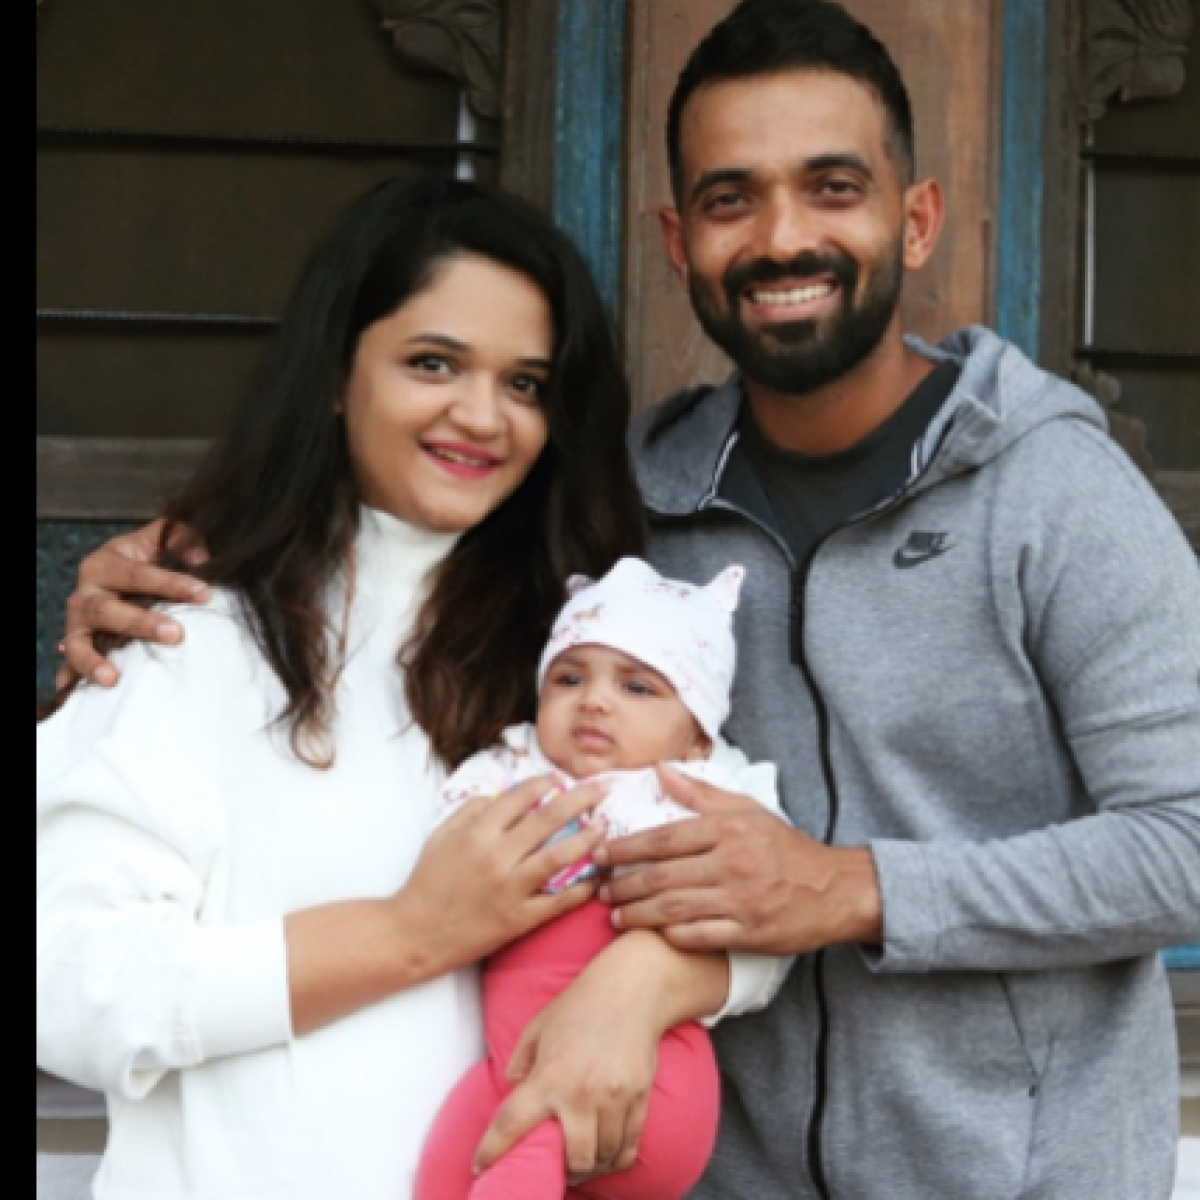 Practicing Karate, reading books, quality family time: Ajinkya Rahane's life in quarantine